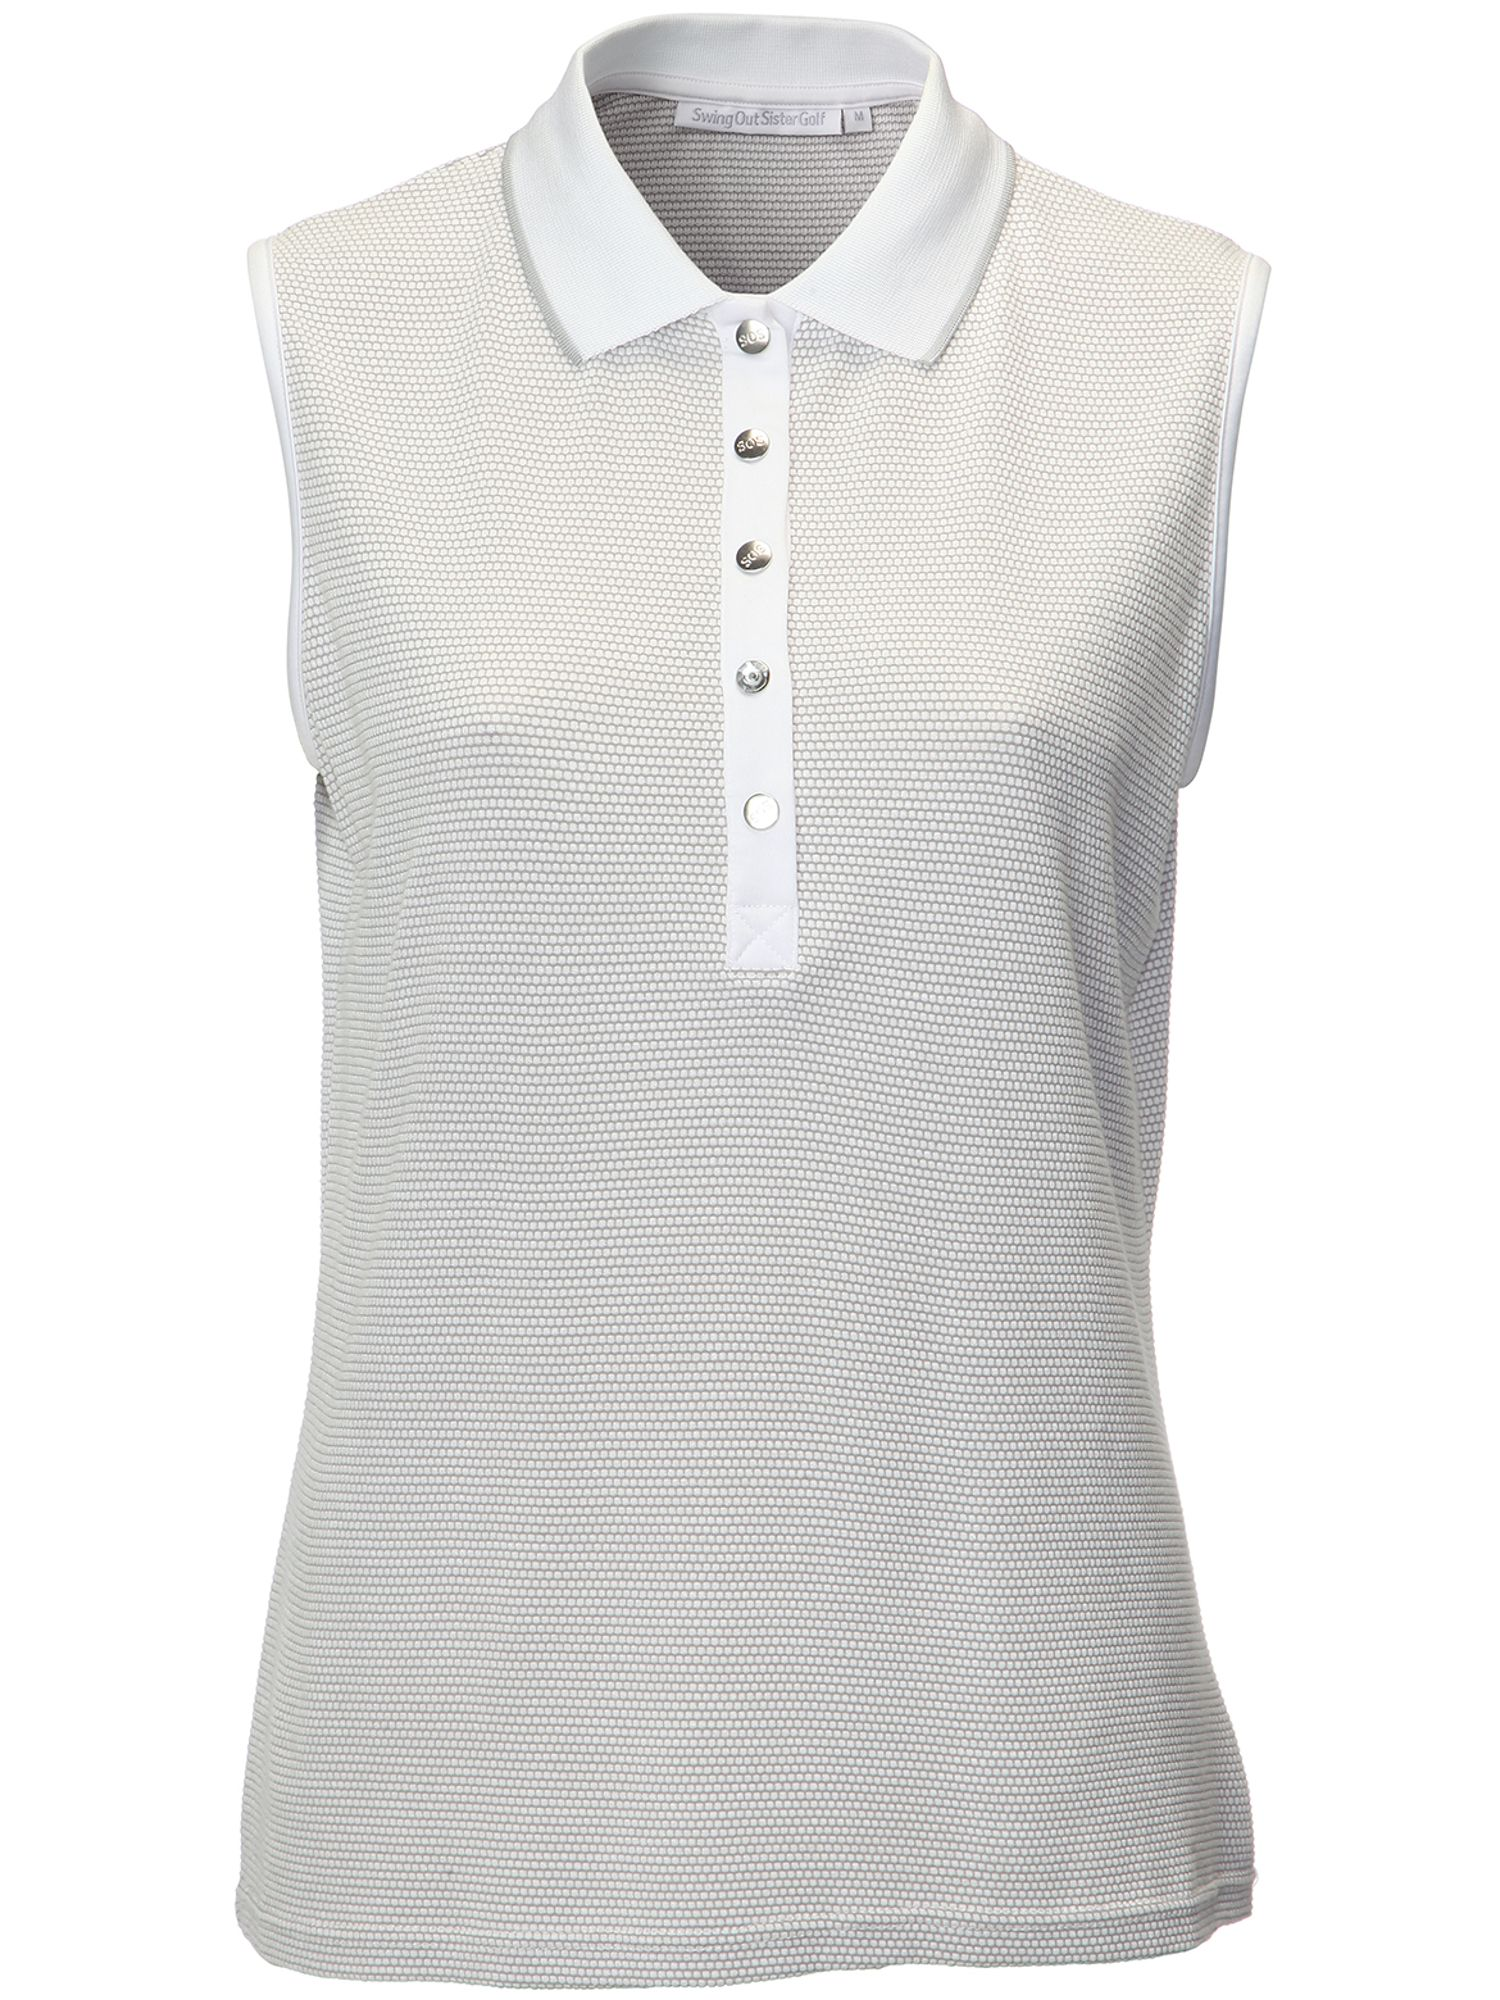 Swing Out Sister Tina Woffle Sleeveless Shirt, Grey